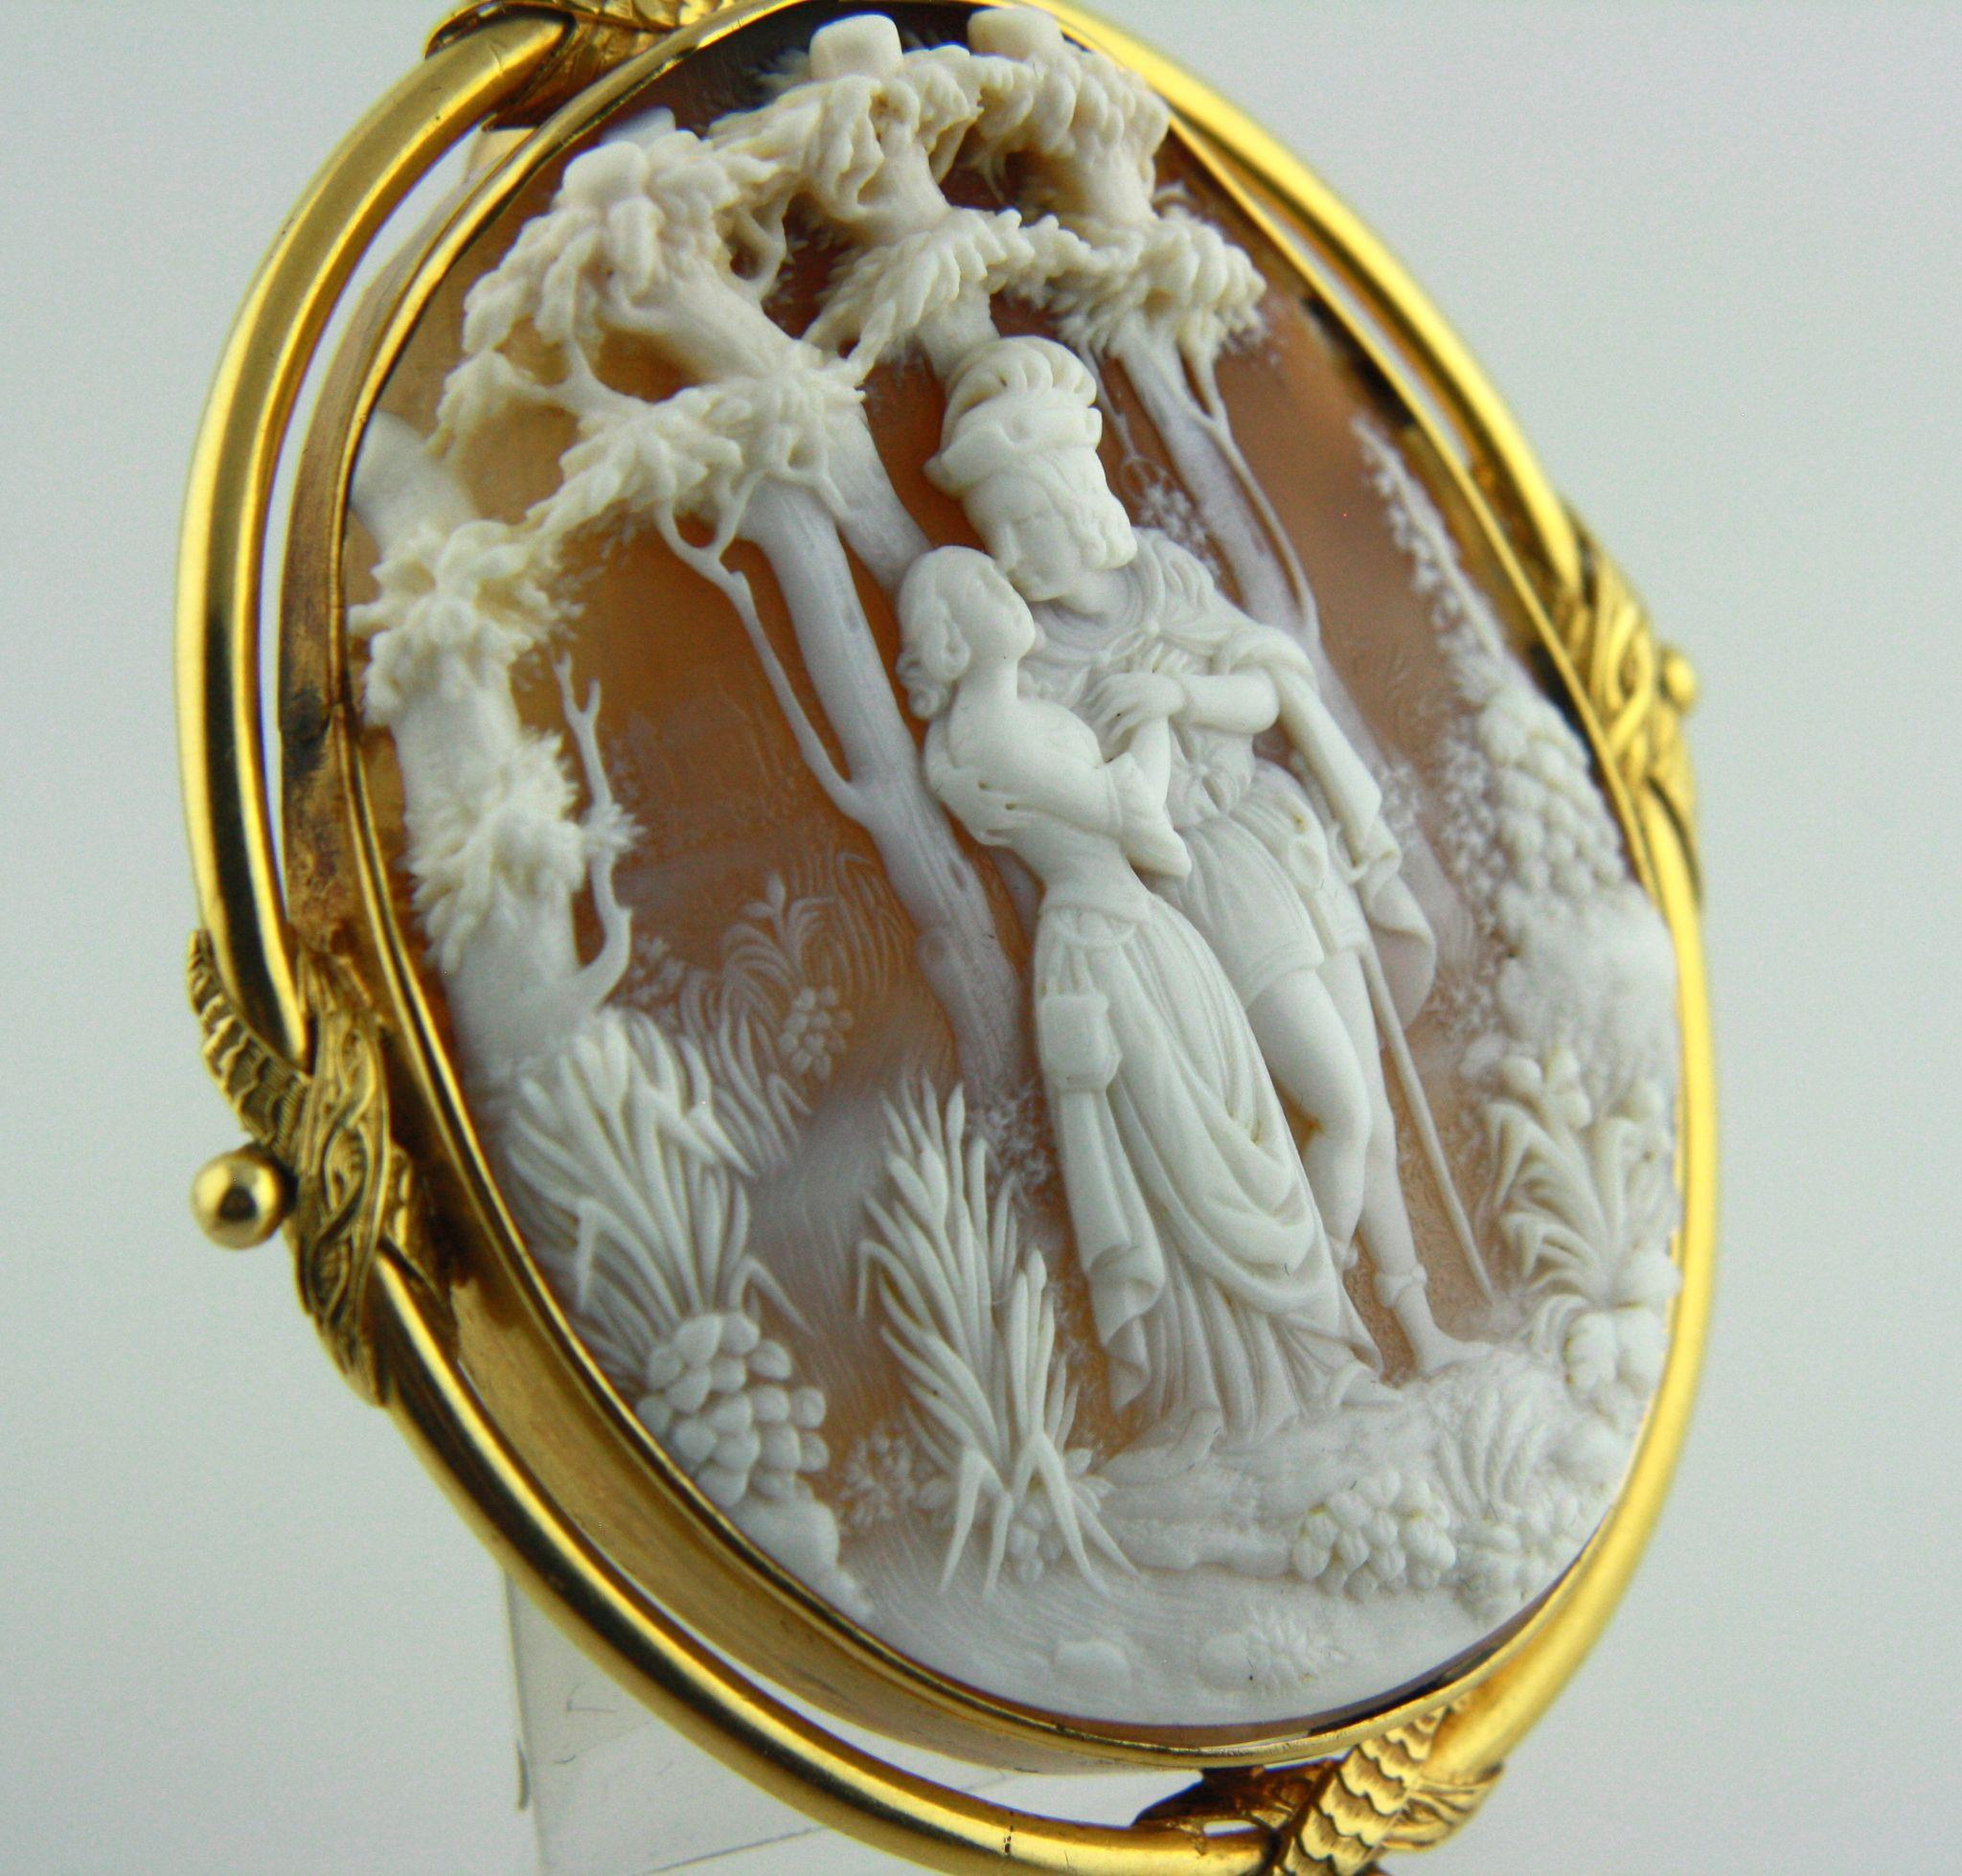 Huge 18k Gold High-relief Shell Cameo Pendant Brooch From